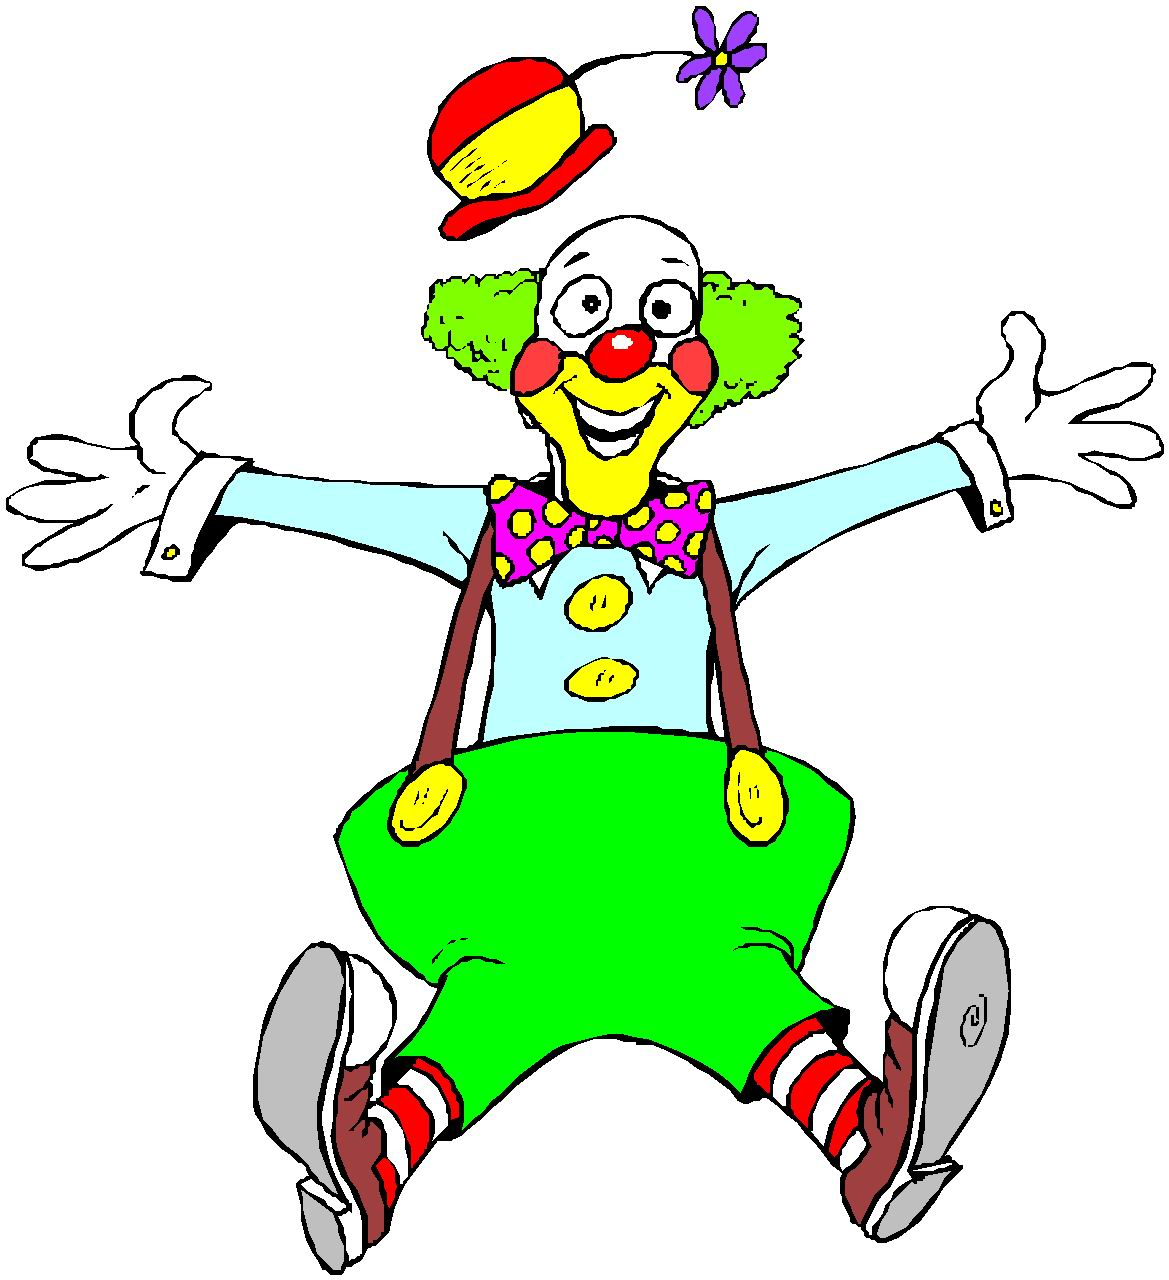 Free Art Clowns, Download Free Clip Art, Free Clip Art on.